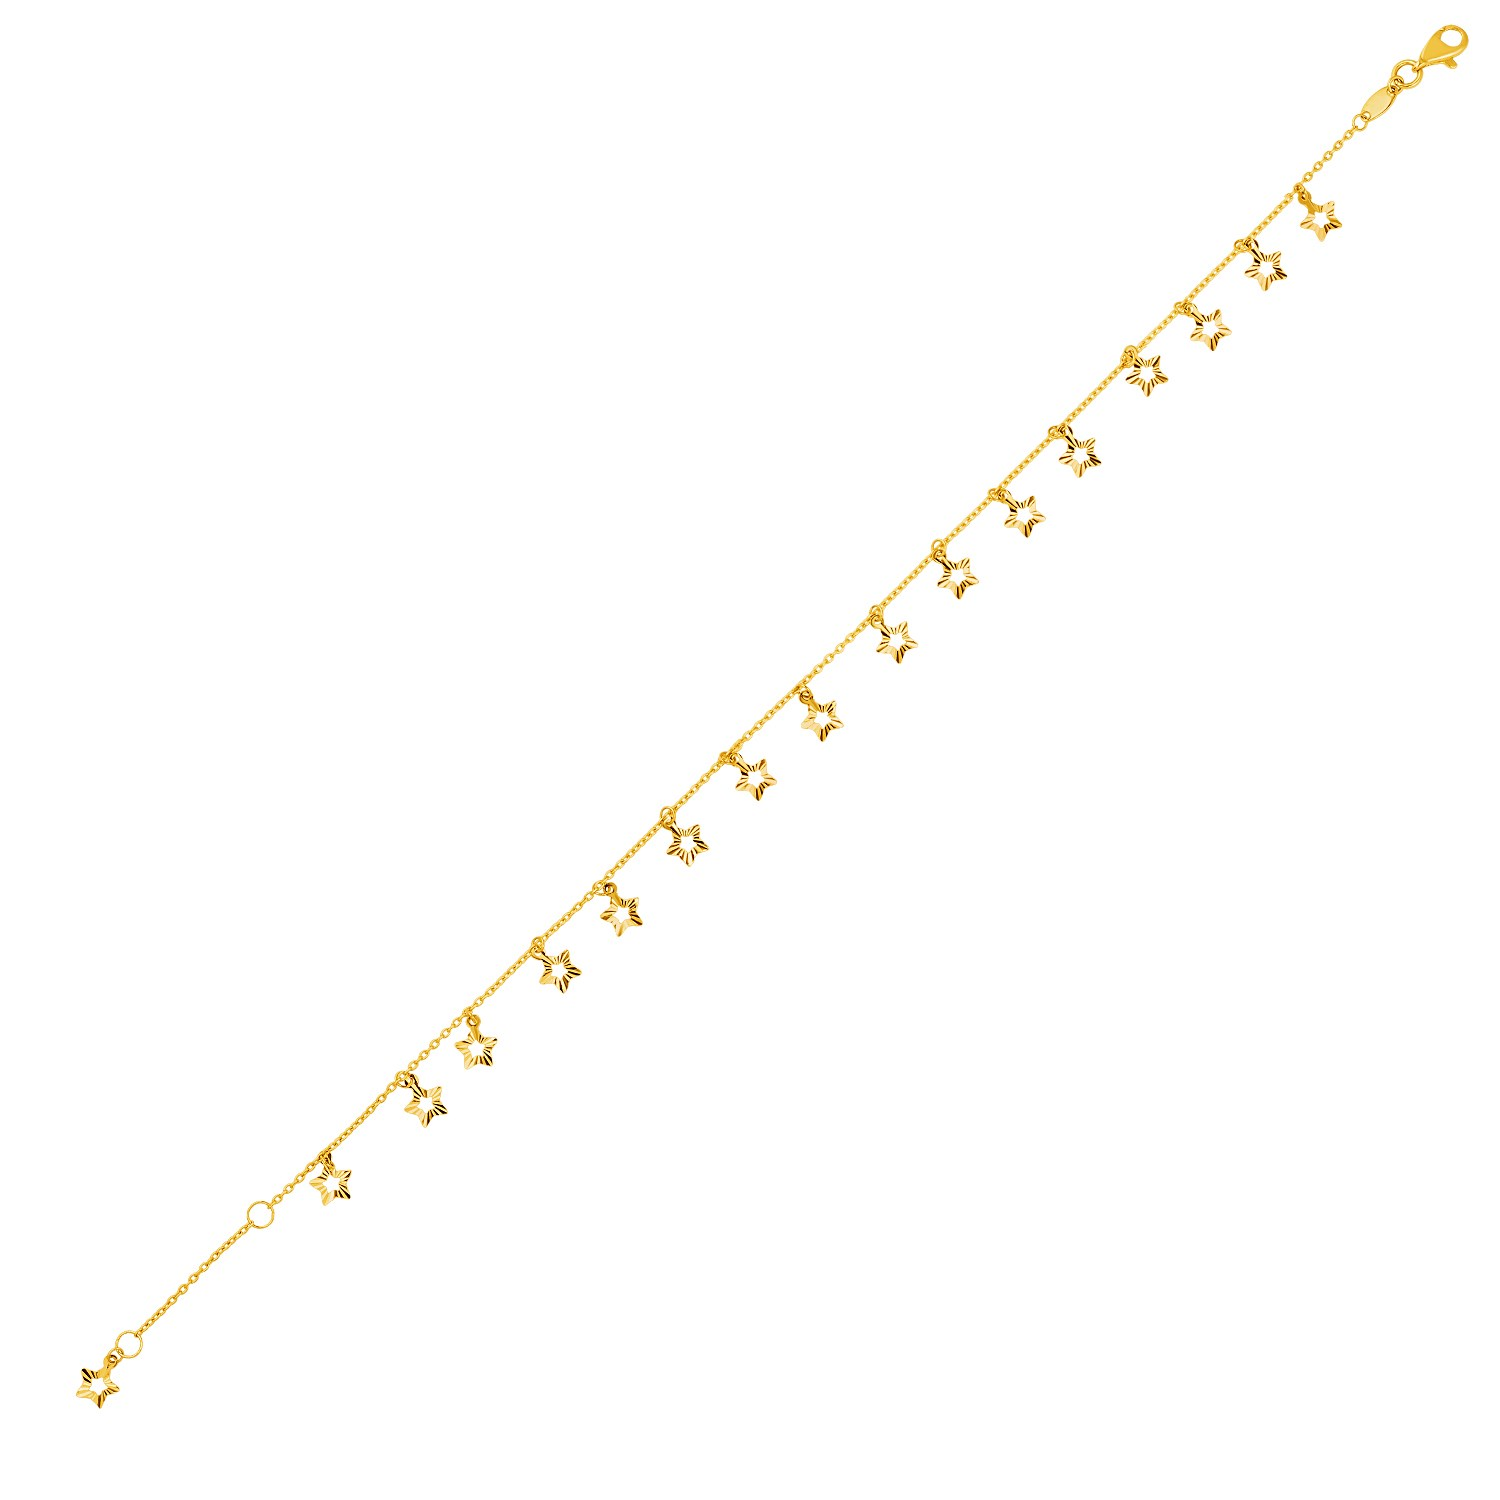 ixlib dsc yellow anklet gold jpg rb ebth items